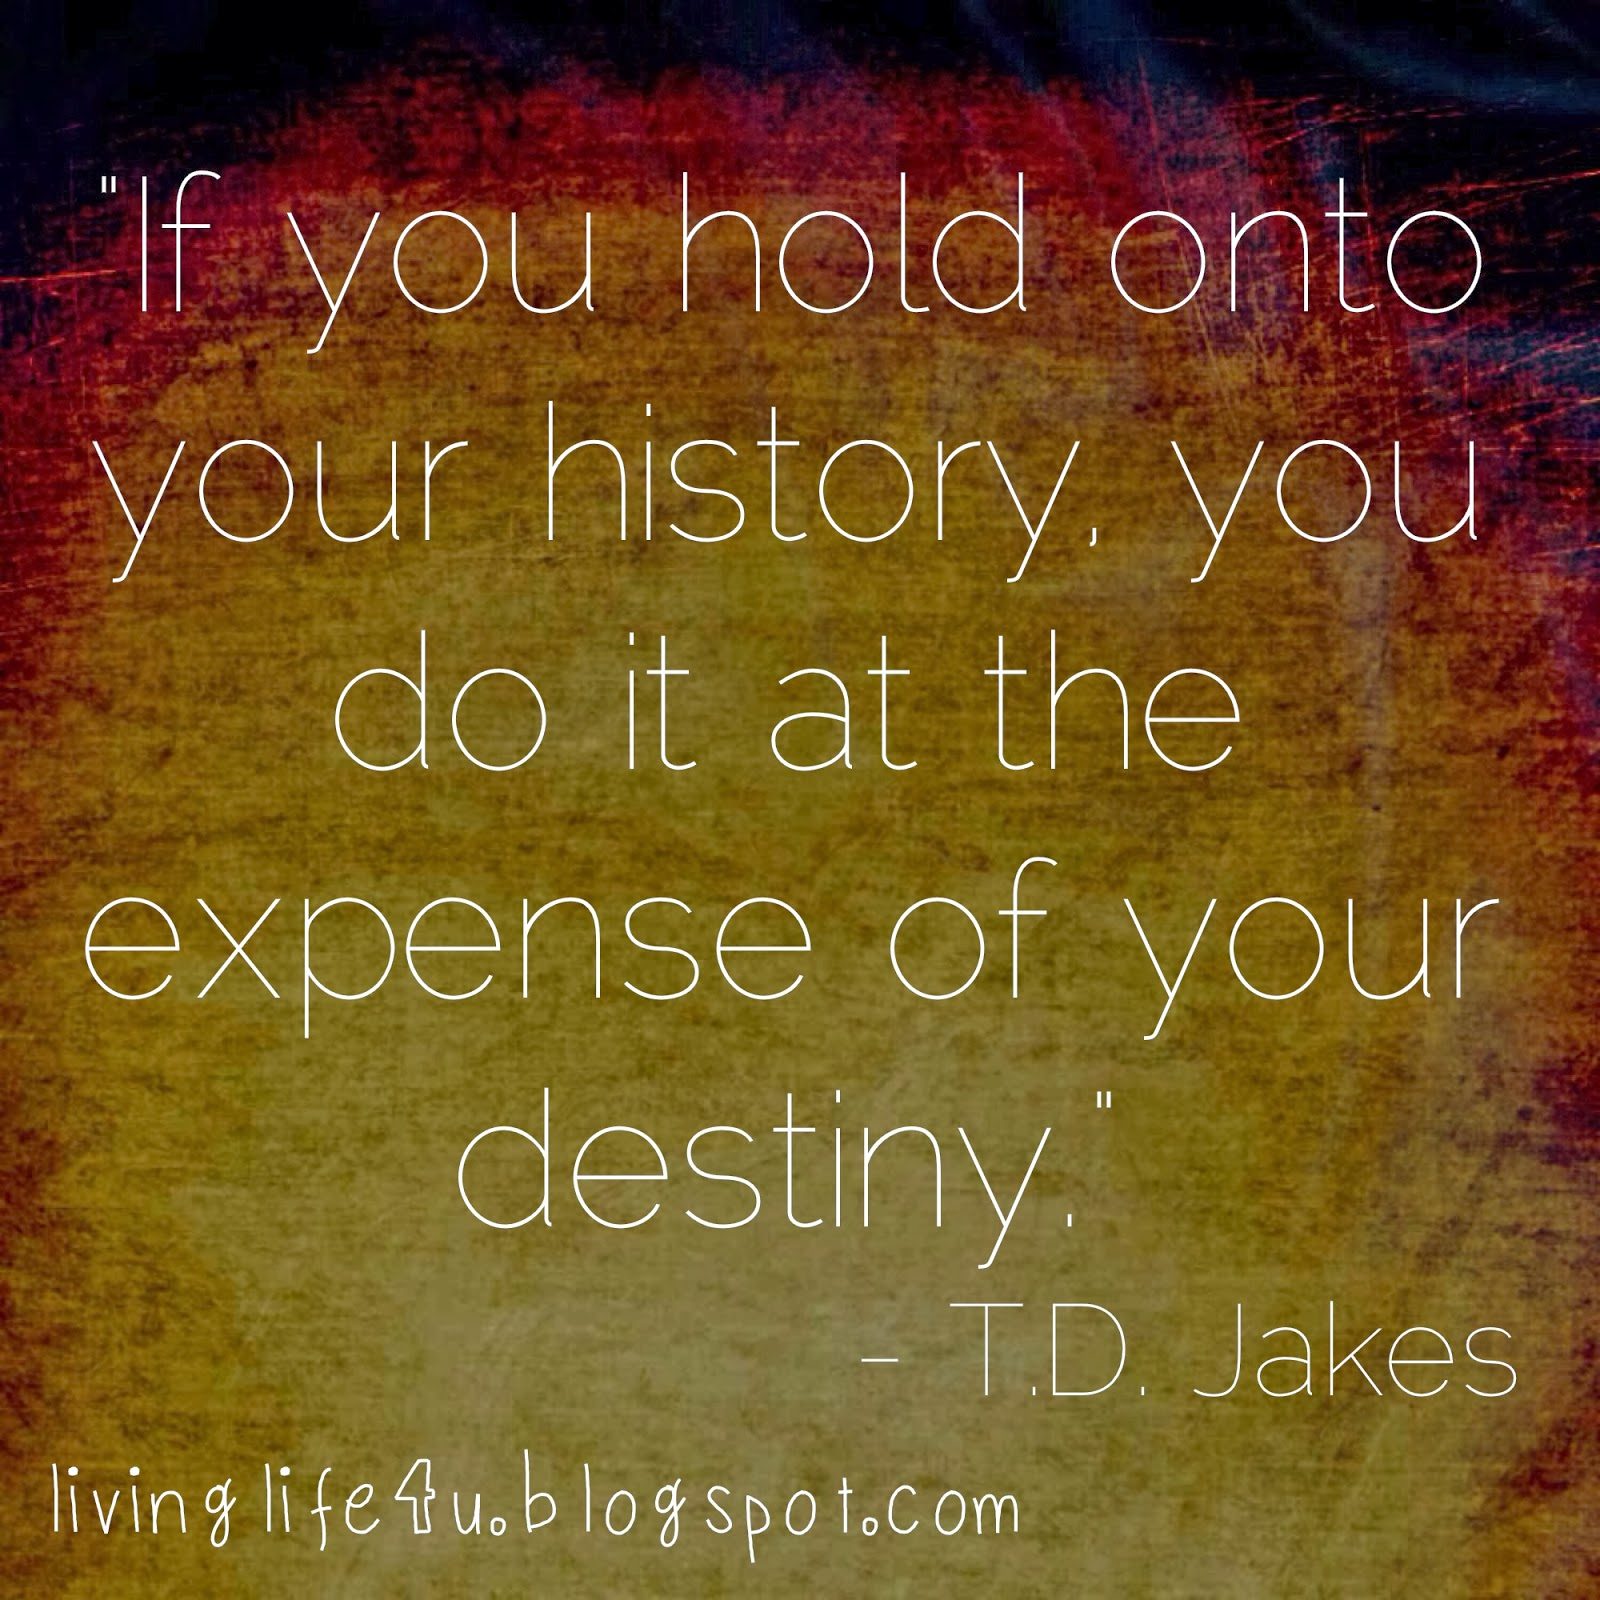 Td Jakes Quotes On Life Live Your Life If You Hold Onto Your History.